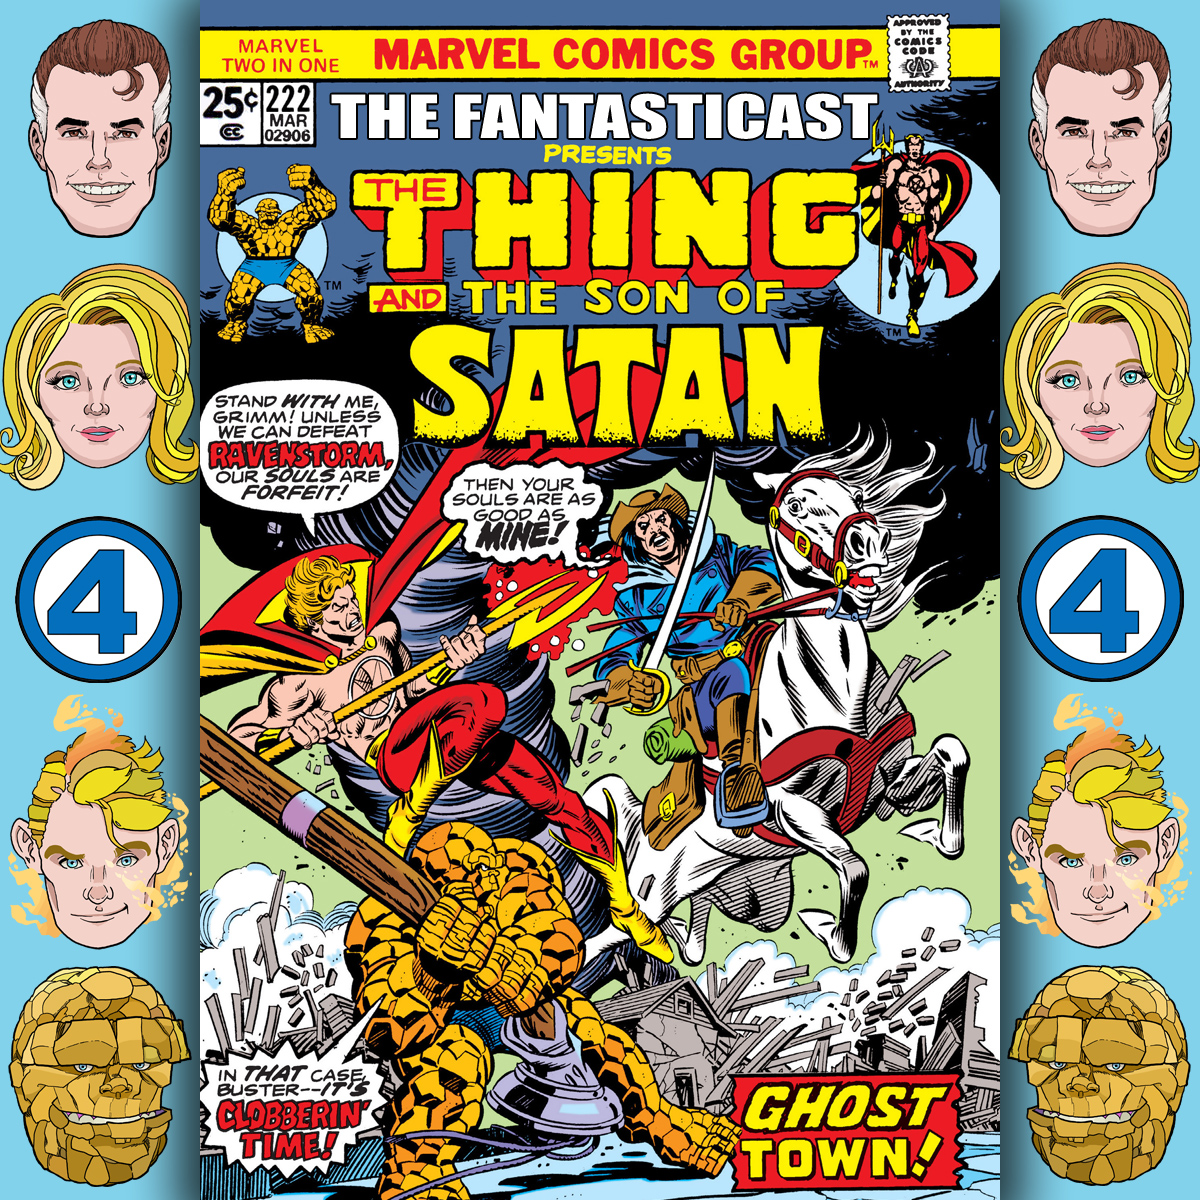 The Fantasticast Episode 222